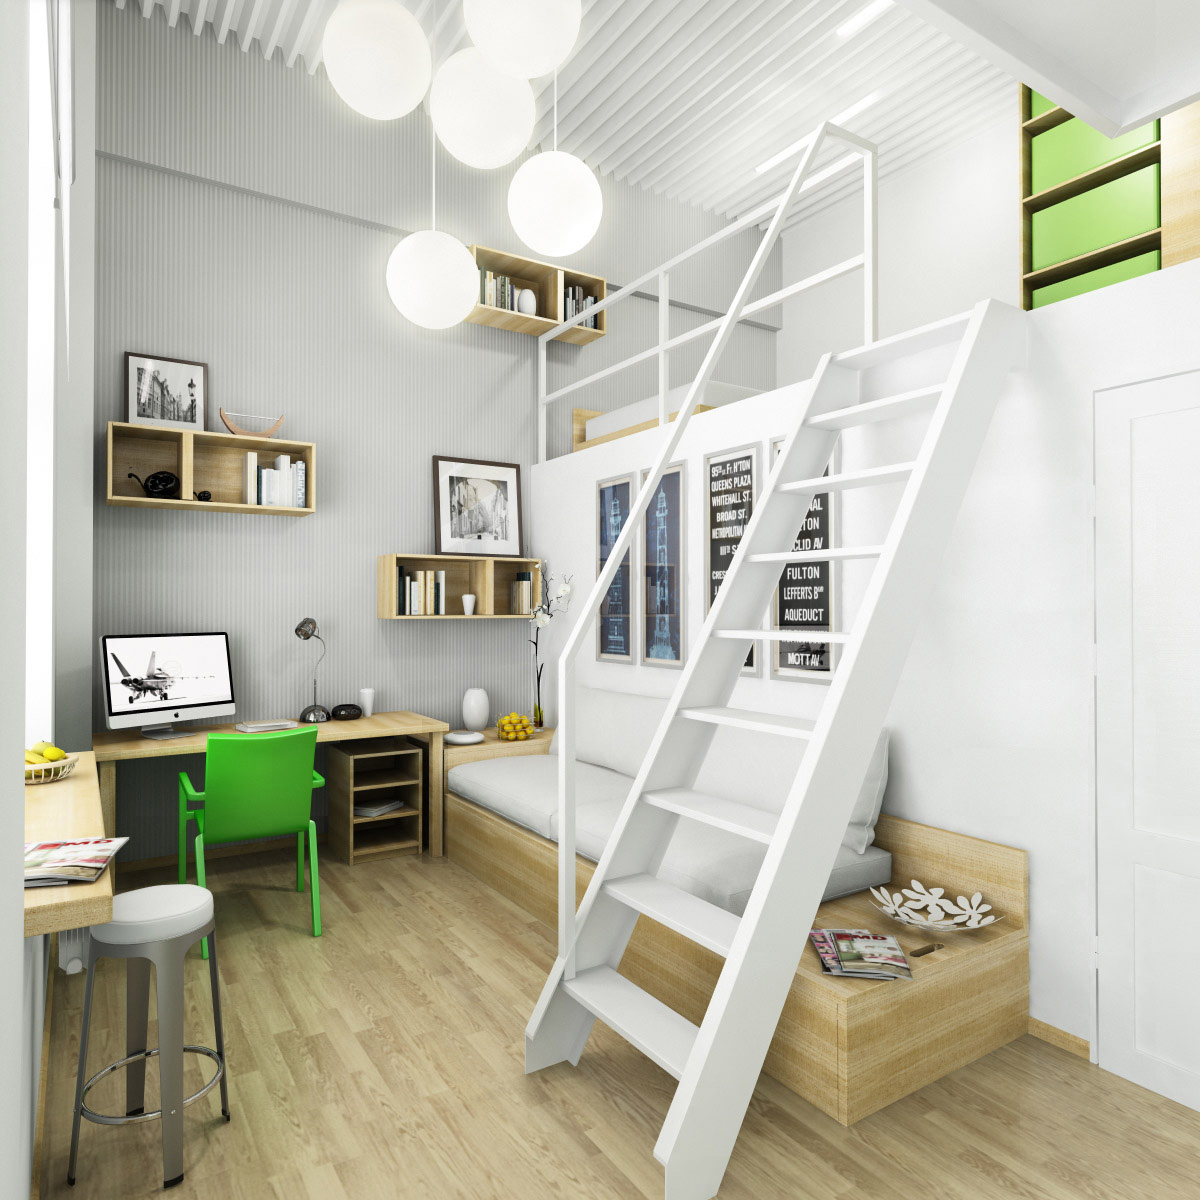 10 Small House Interior Design Solutions: Teen Workspaces